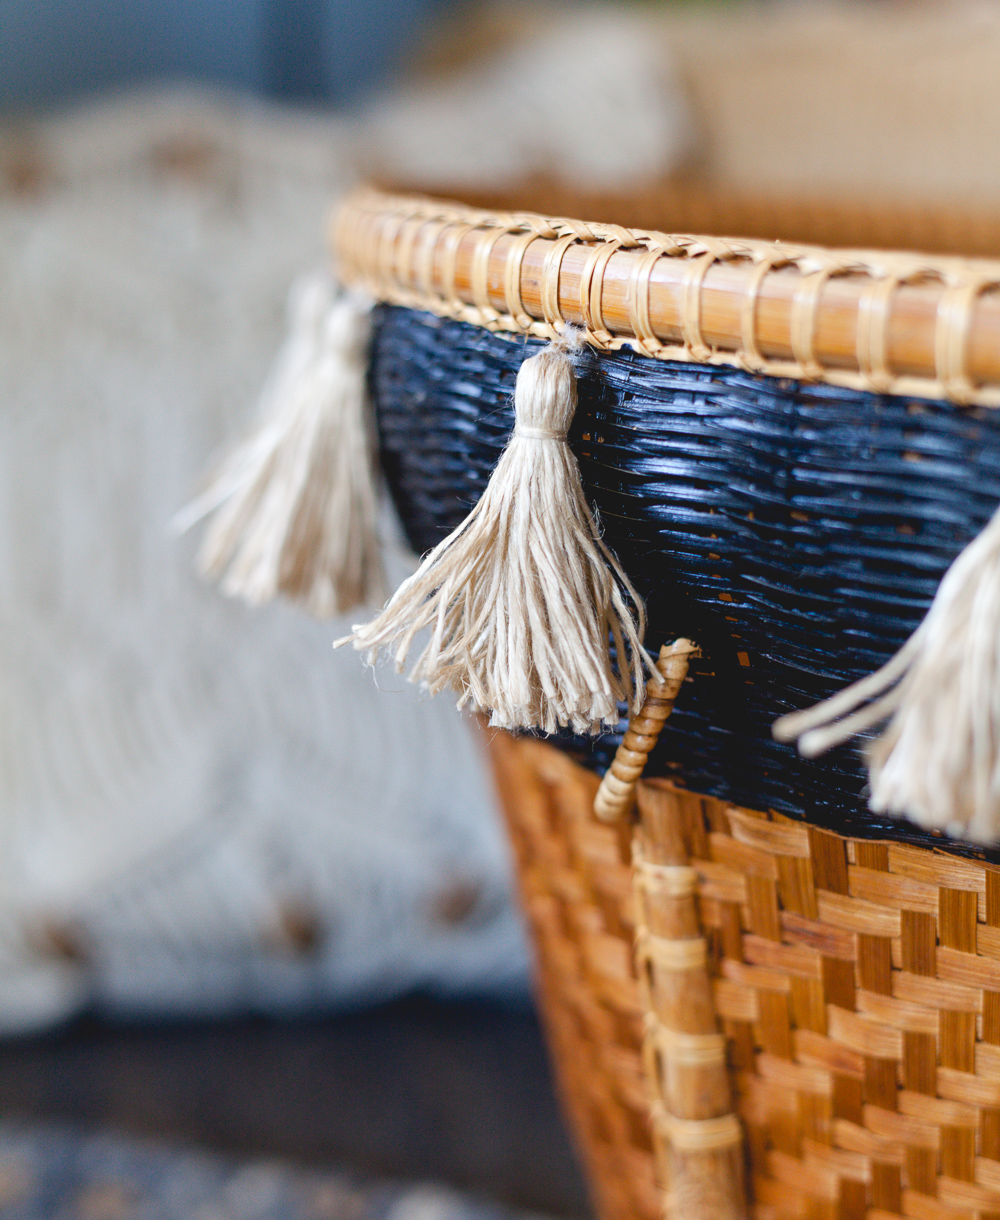 Upcycled tassle basket